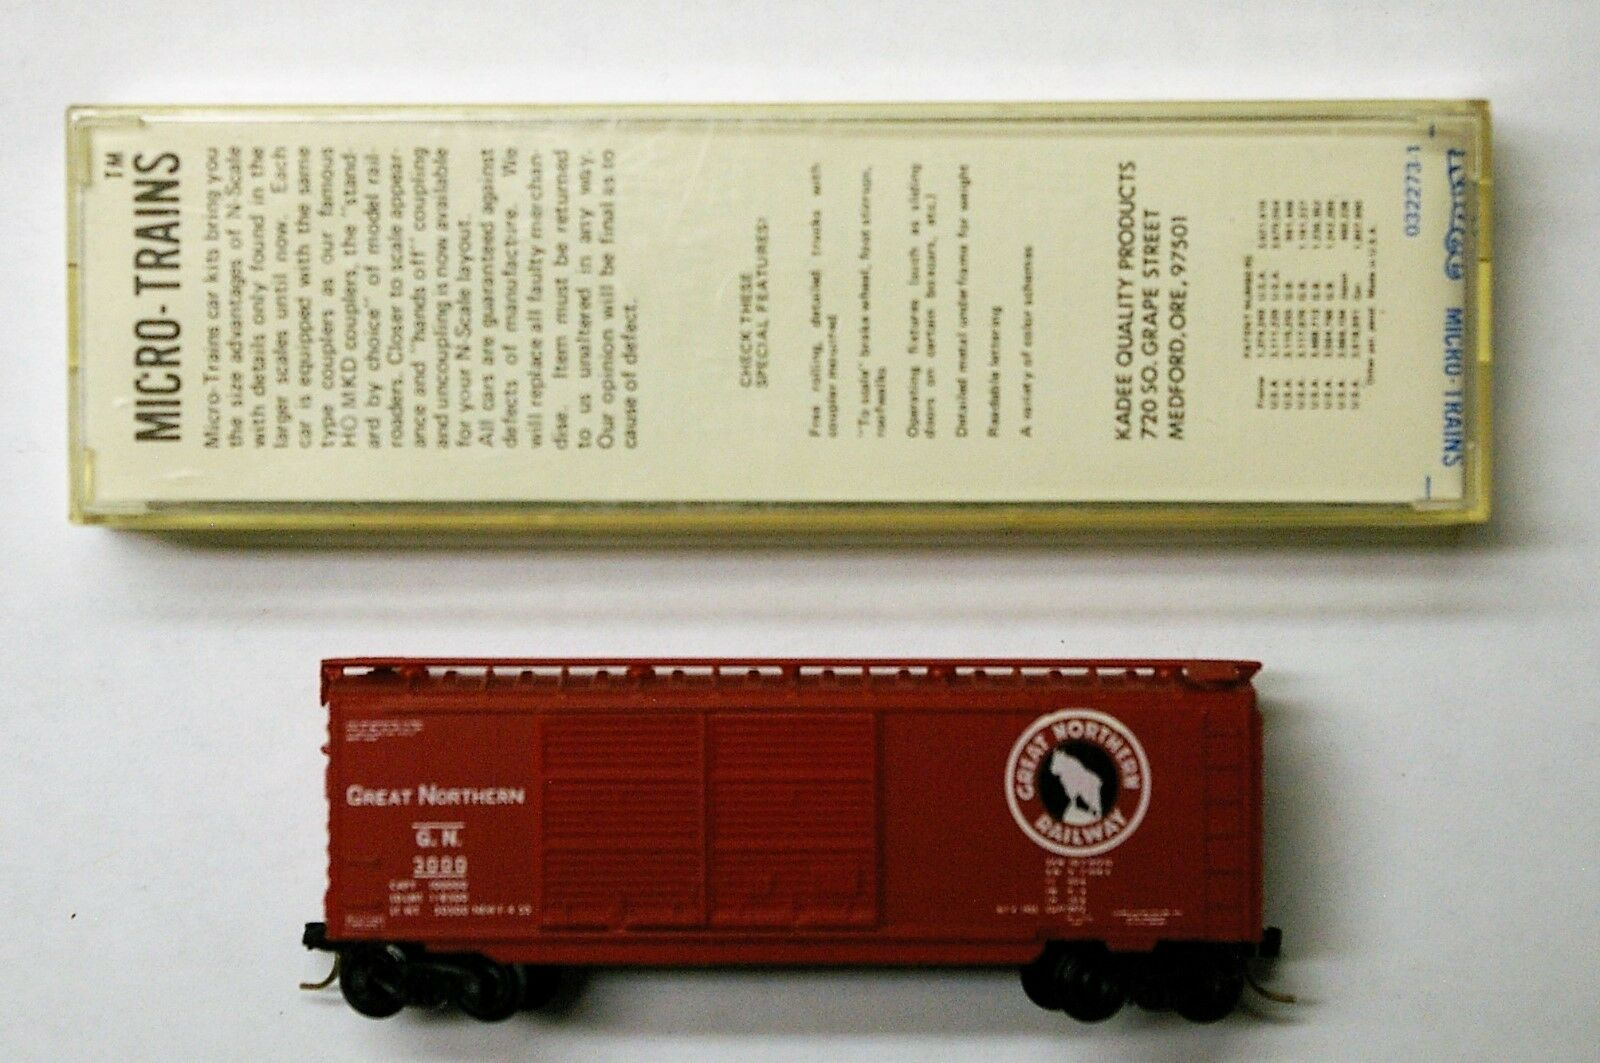 MTL Micro-Trains 23190 Great Northern GN 3000